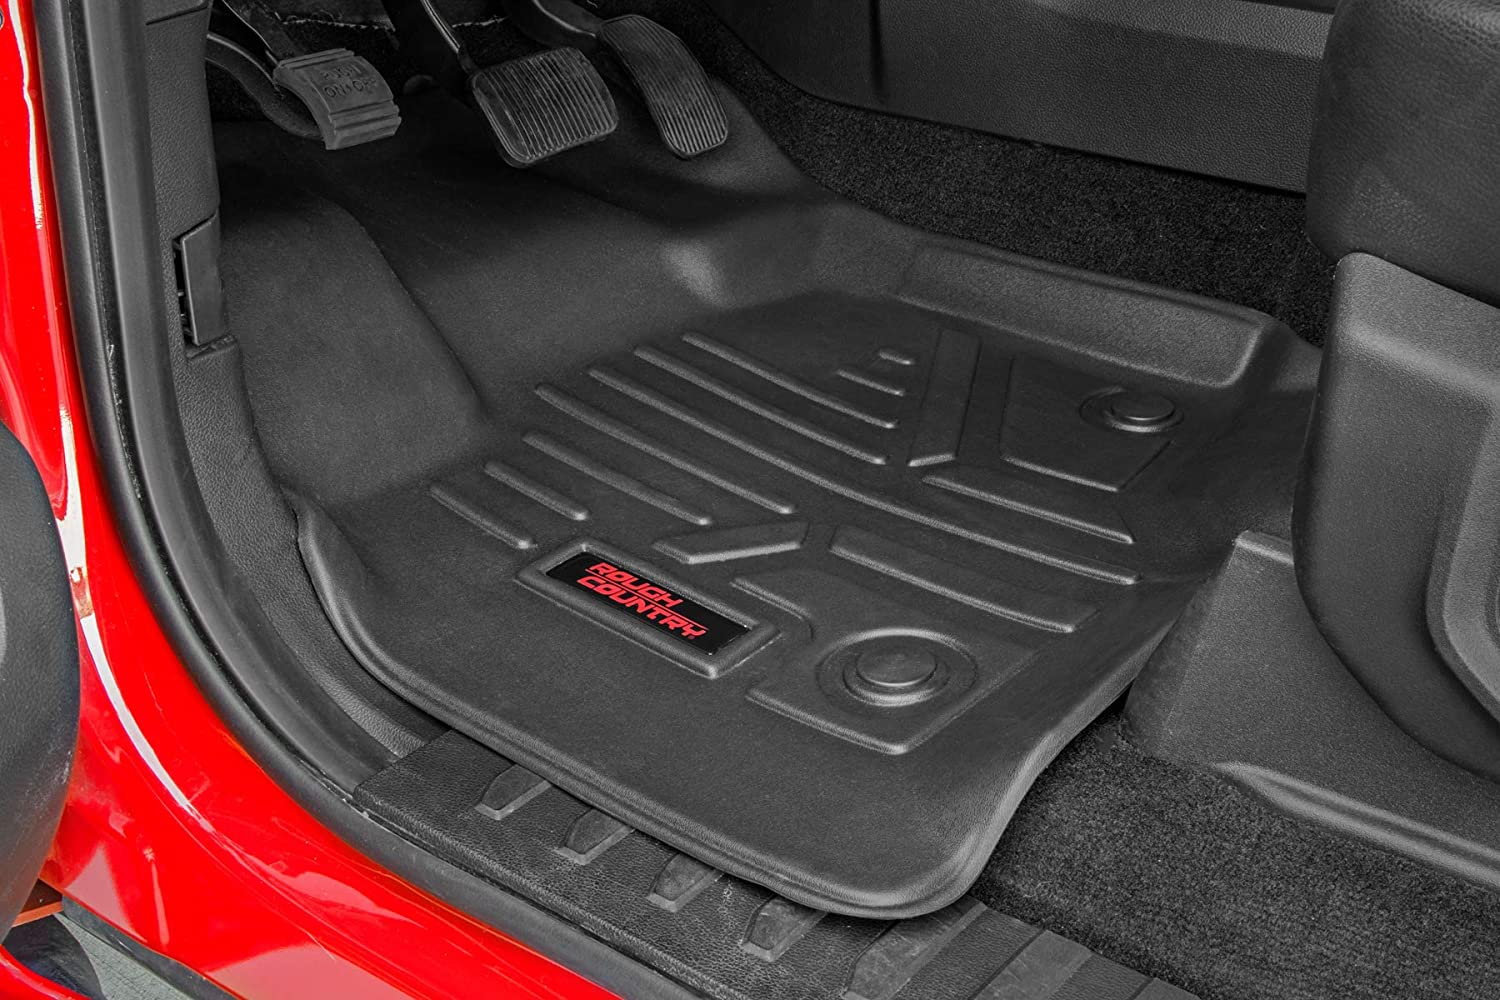 Under Seat Storage M-61501 1st//2nd Row Rough Country Floor Liners 2020 Jeep Gladiator JT JT Rubber Mats Front//Rear fits